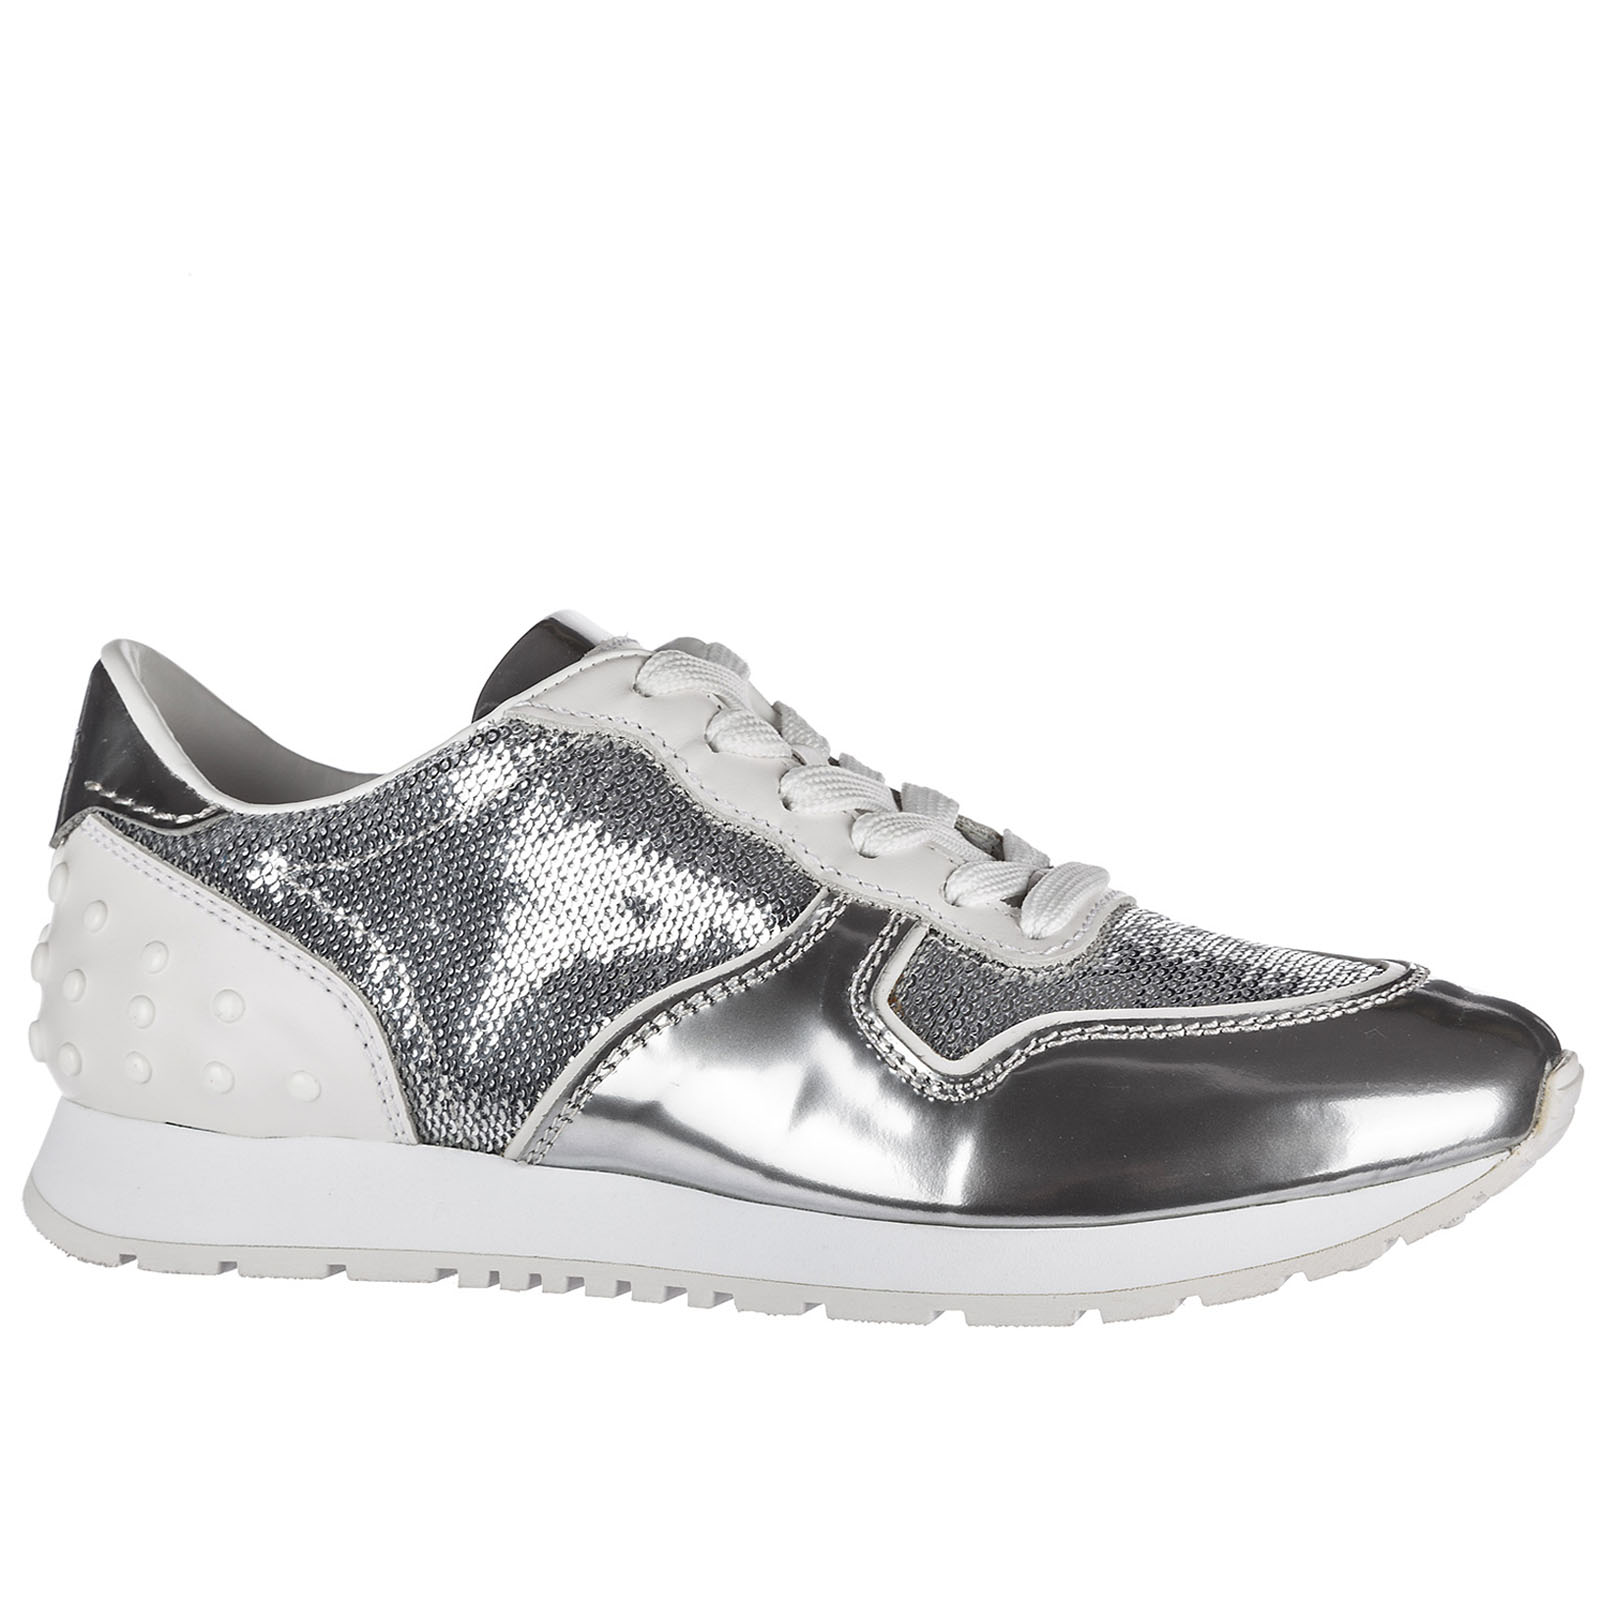 Women's shoes leather trainers sneakers sportivo allacciata